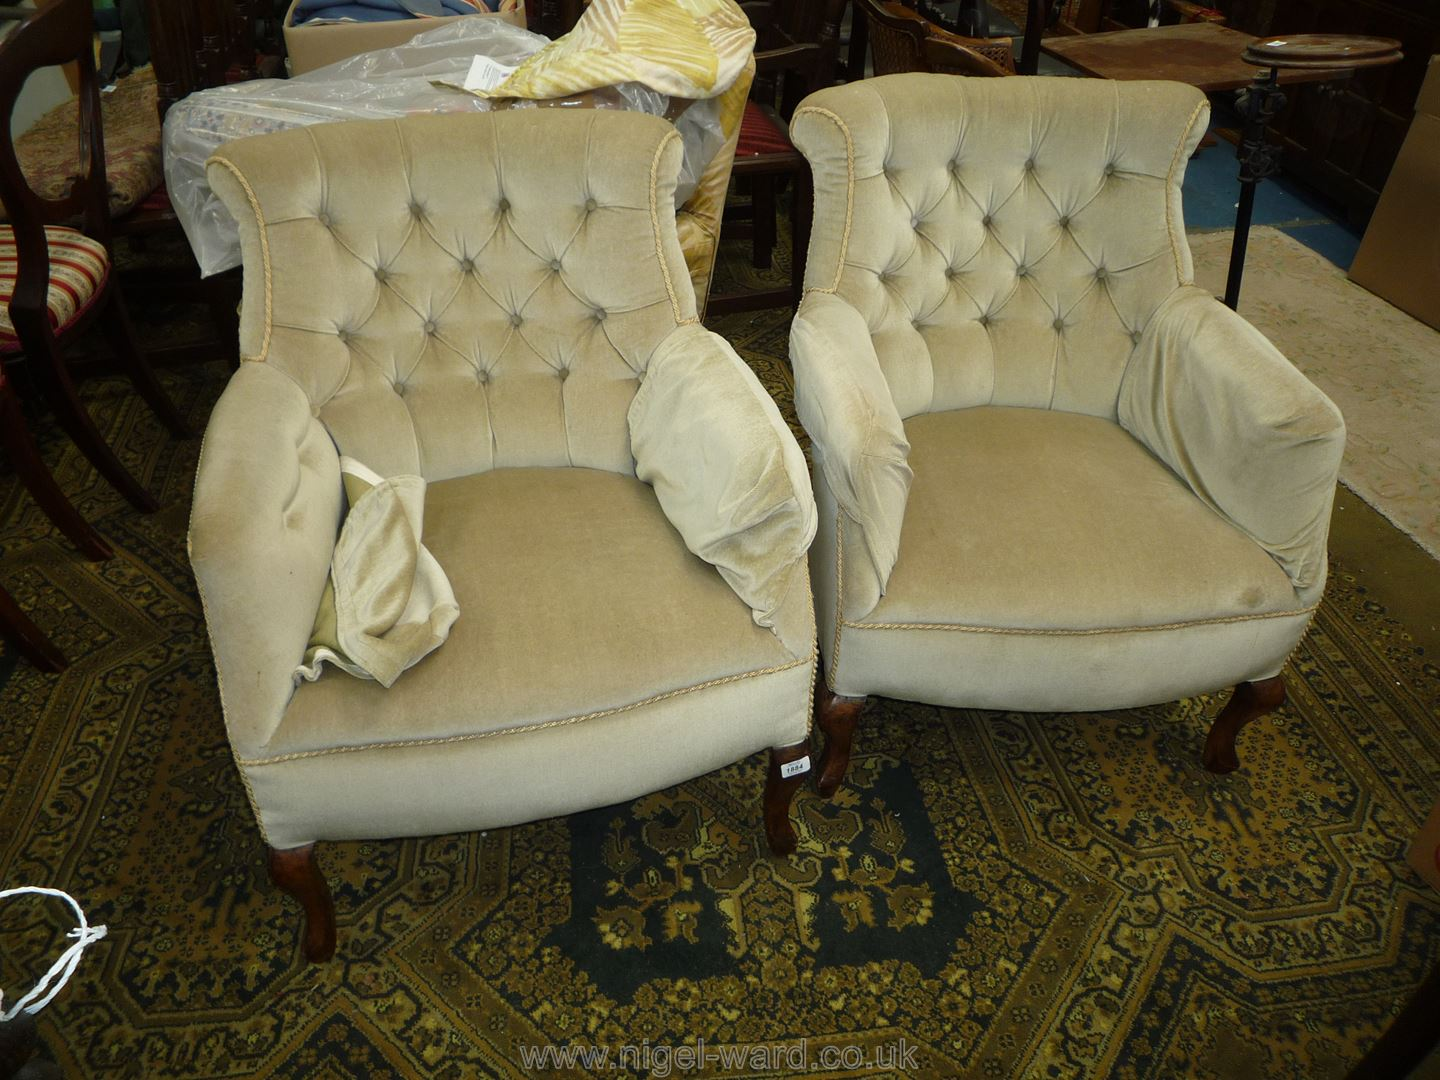 An elegant pair of pre-1950 button-backed Armchairs upholstered in delicate pale fern green draylon,